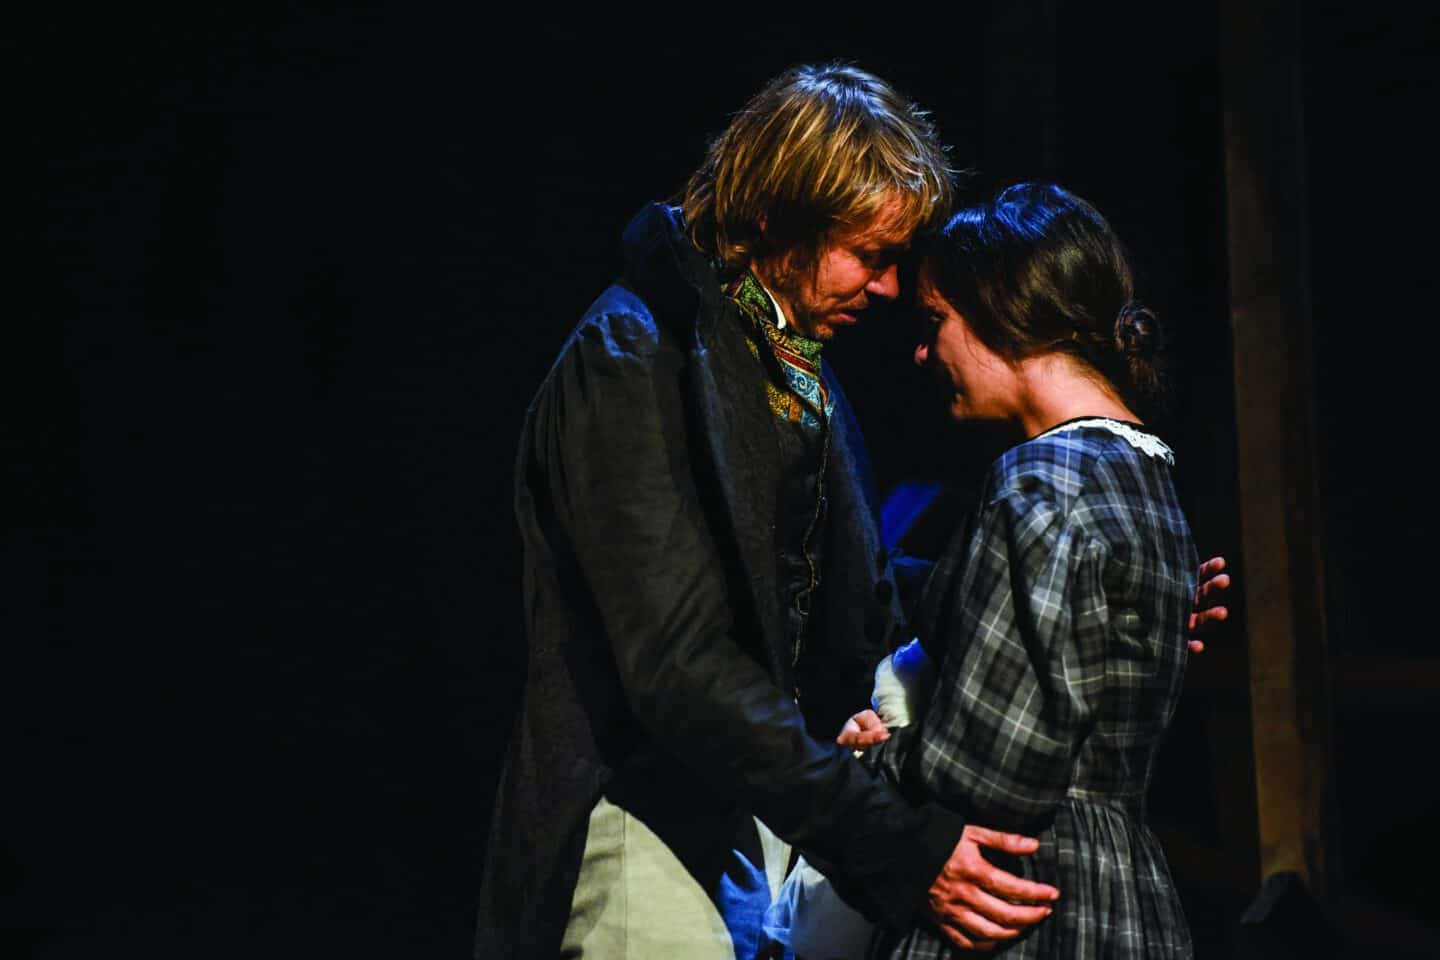 Blackeyed Theatre's Jane Eyre at Malvern Theatres: Review